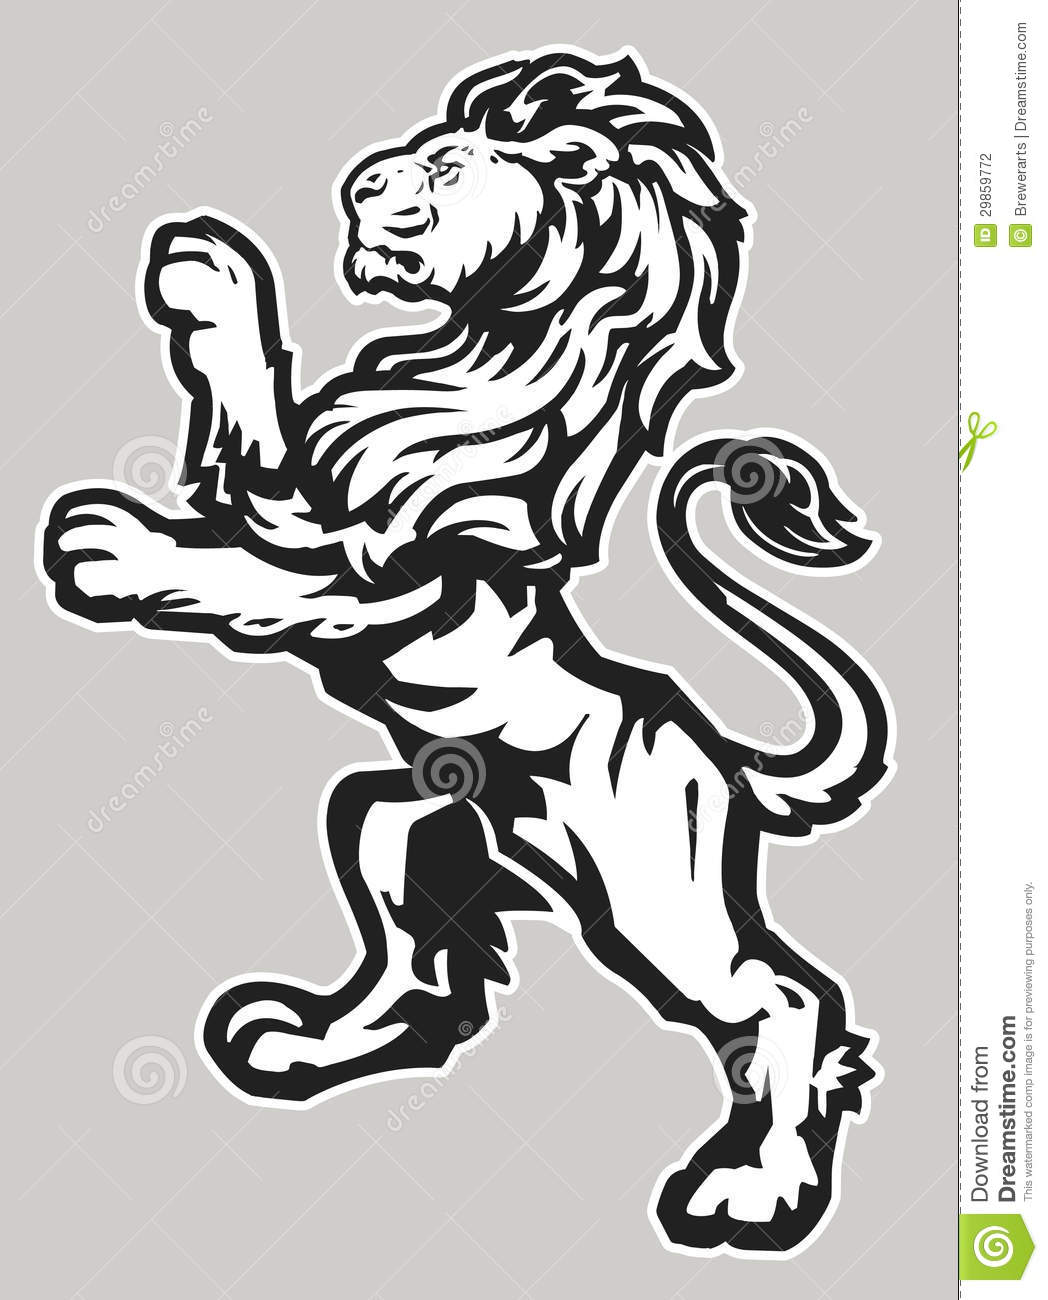 Clipart free rampant lion silhouette.